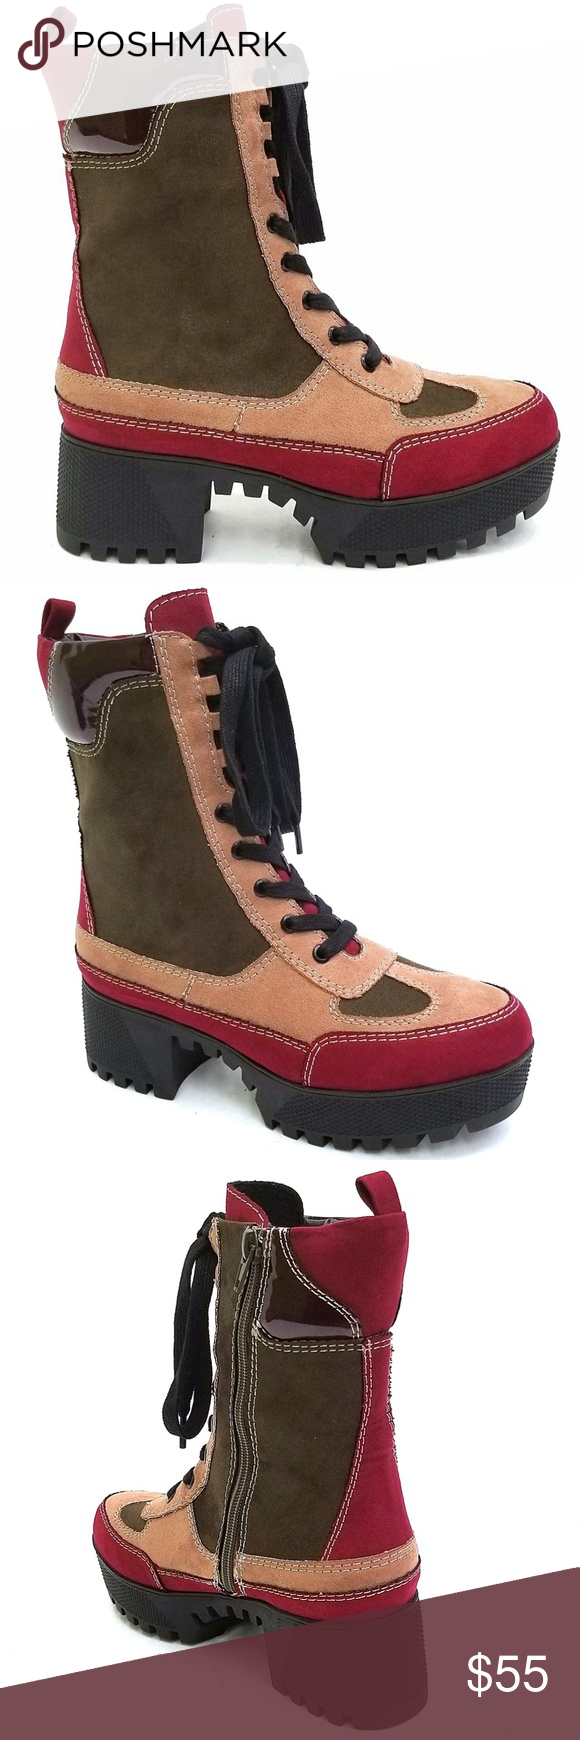 9ba999d44922 Combat Chunky Platform Lug Sole Ankle Boot Booties Be the center of  attention in these awesome lace up chunky lug sole ankle boots. New in box  Man made ...